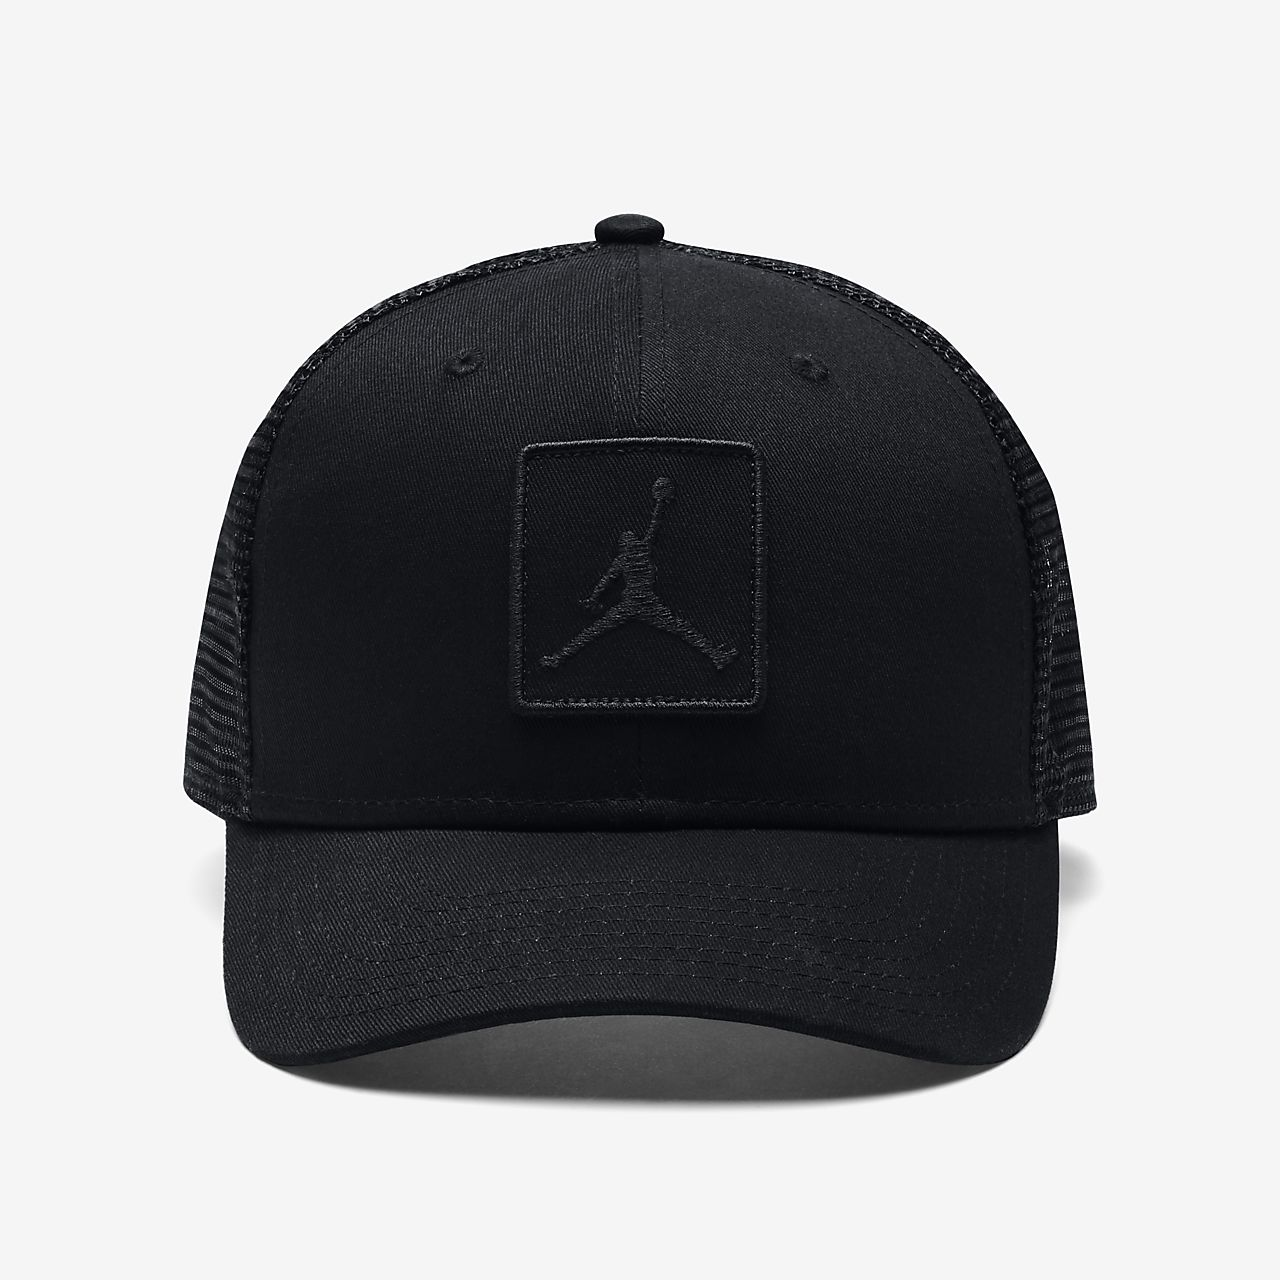 110d3c02973 Jordan Jumpman Classic99 Trucker Adjustable Hat. Nike.com